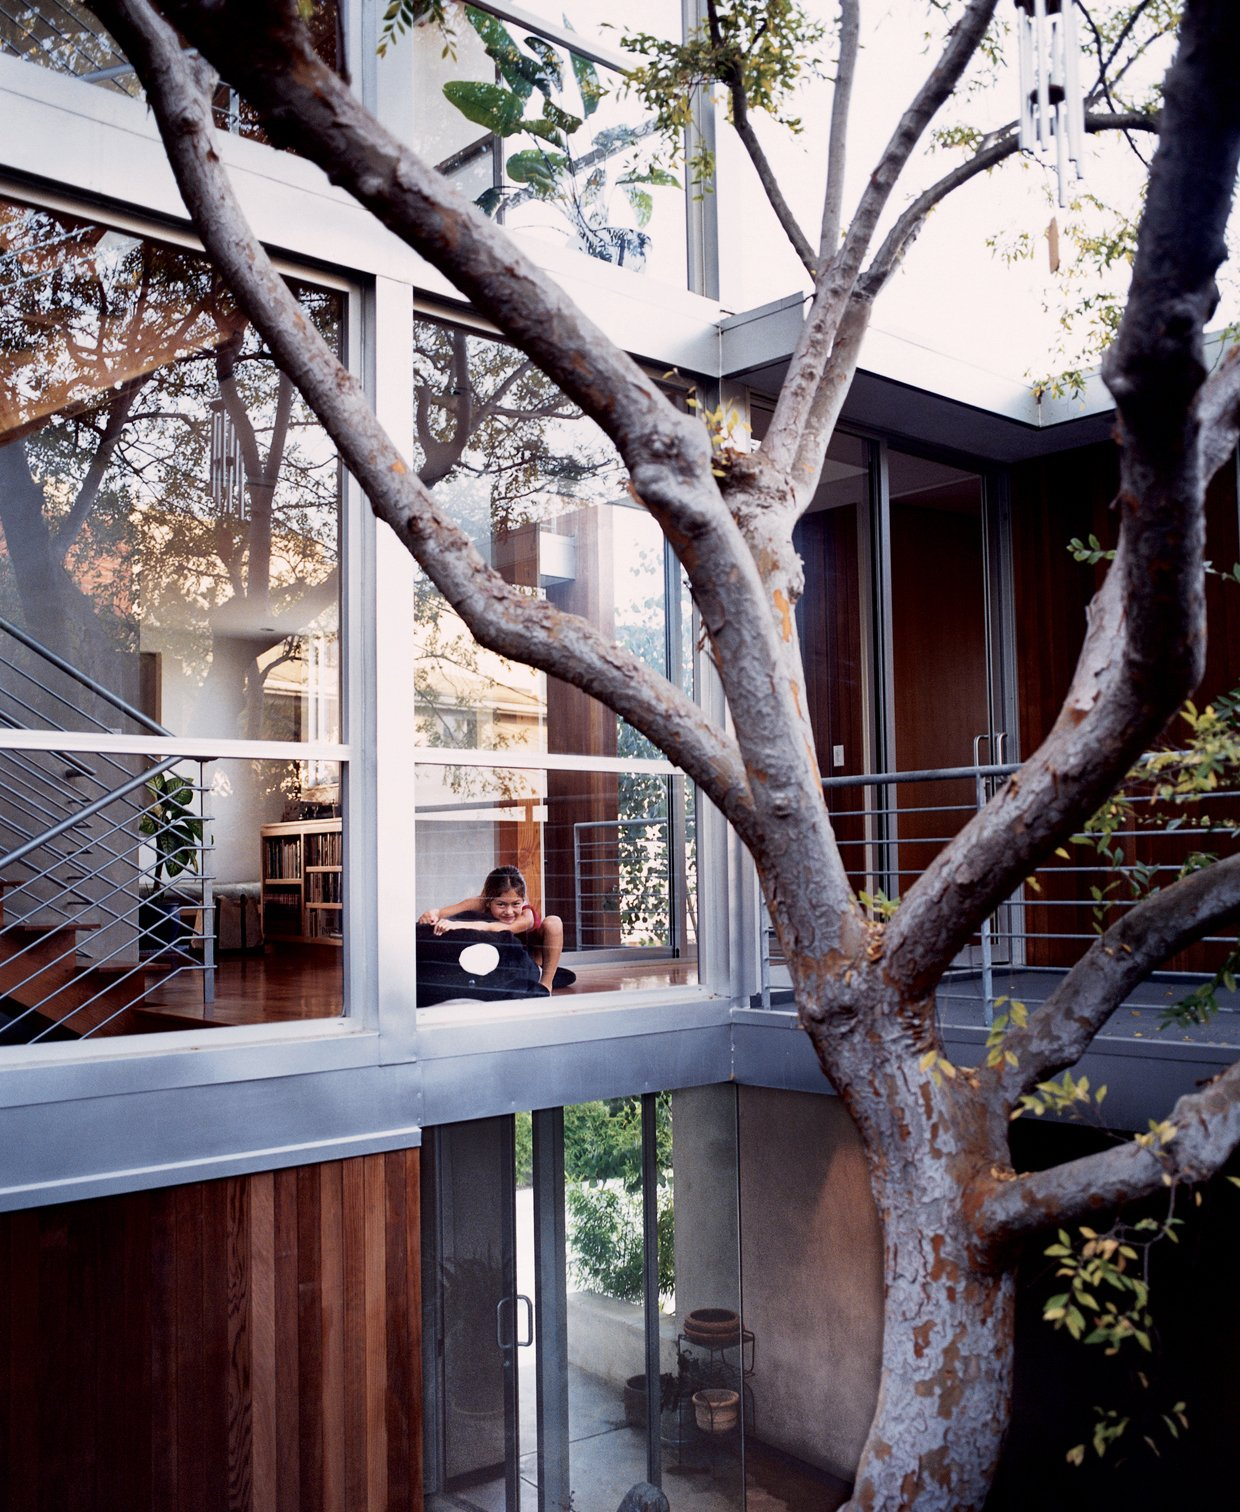 Kalia, just outside the playroom, overlooking the courtyard and the Chinese elm around which the entire interior was built. Two Houses Are Better Than One - Photo 12 of 13